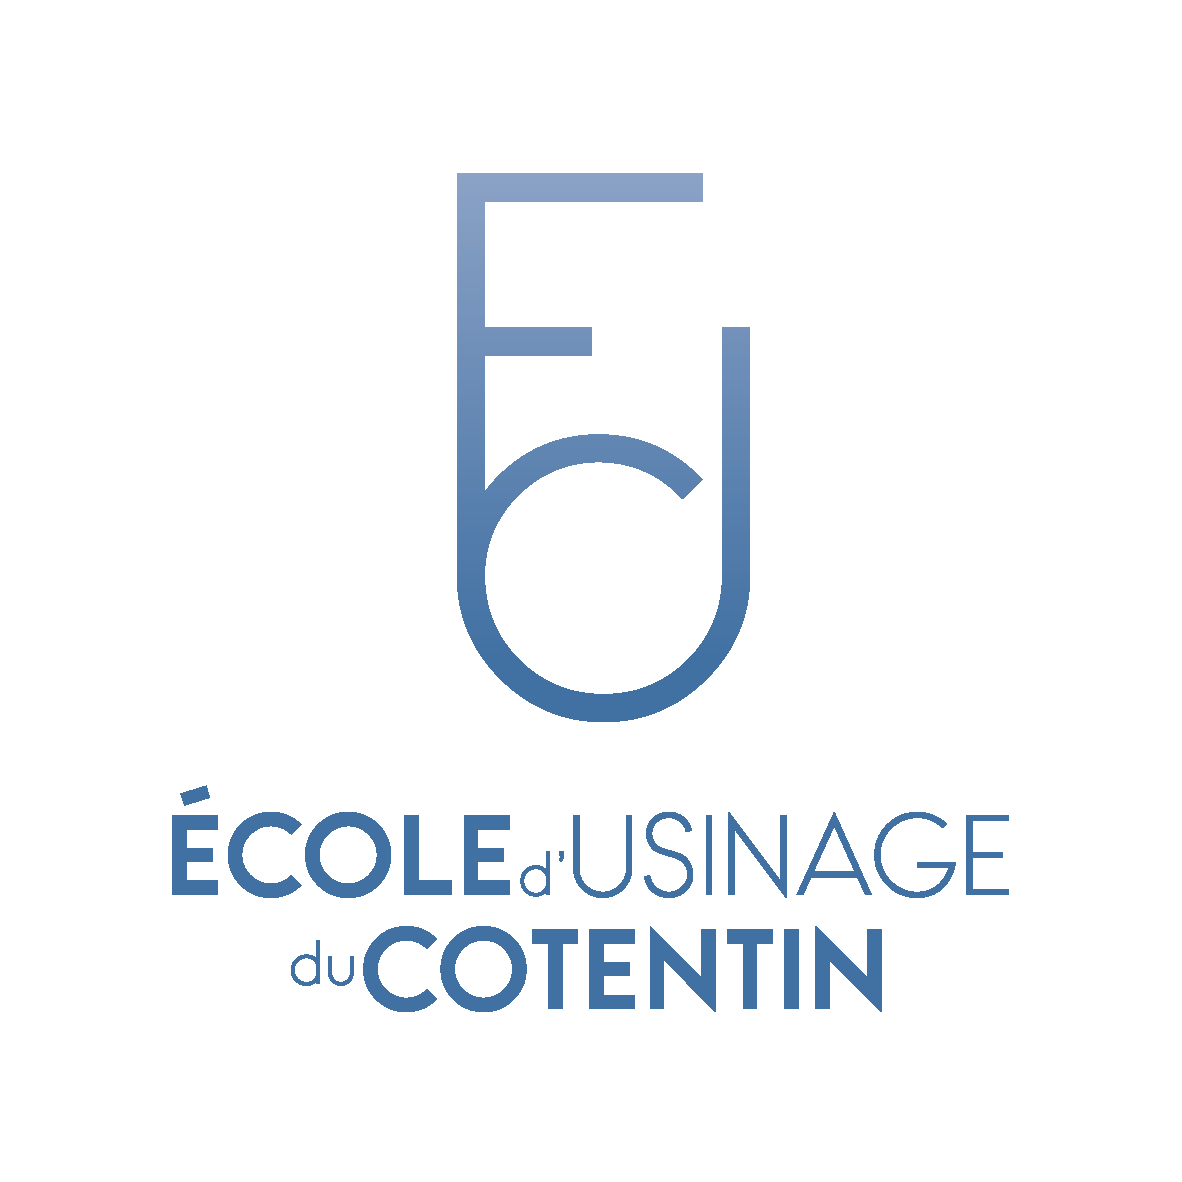 Ecole d'Usinage du Cotentin